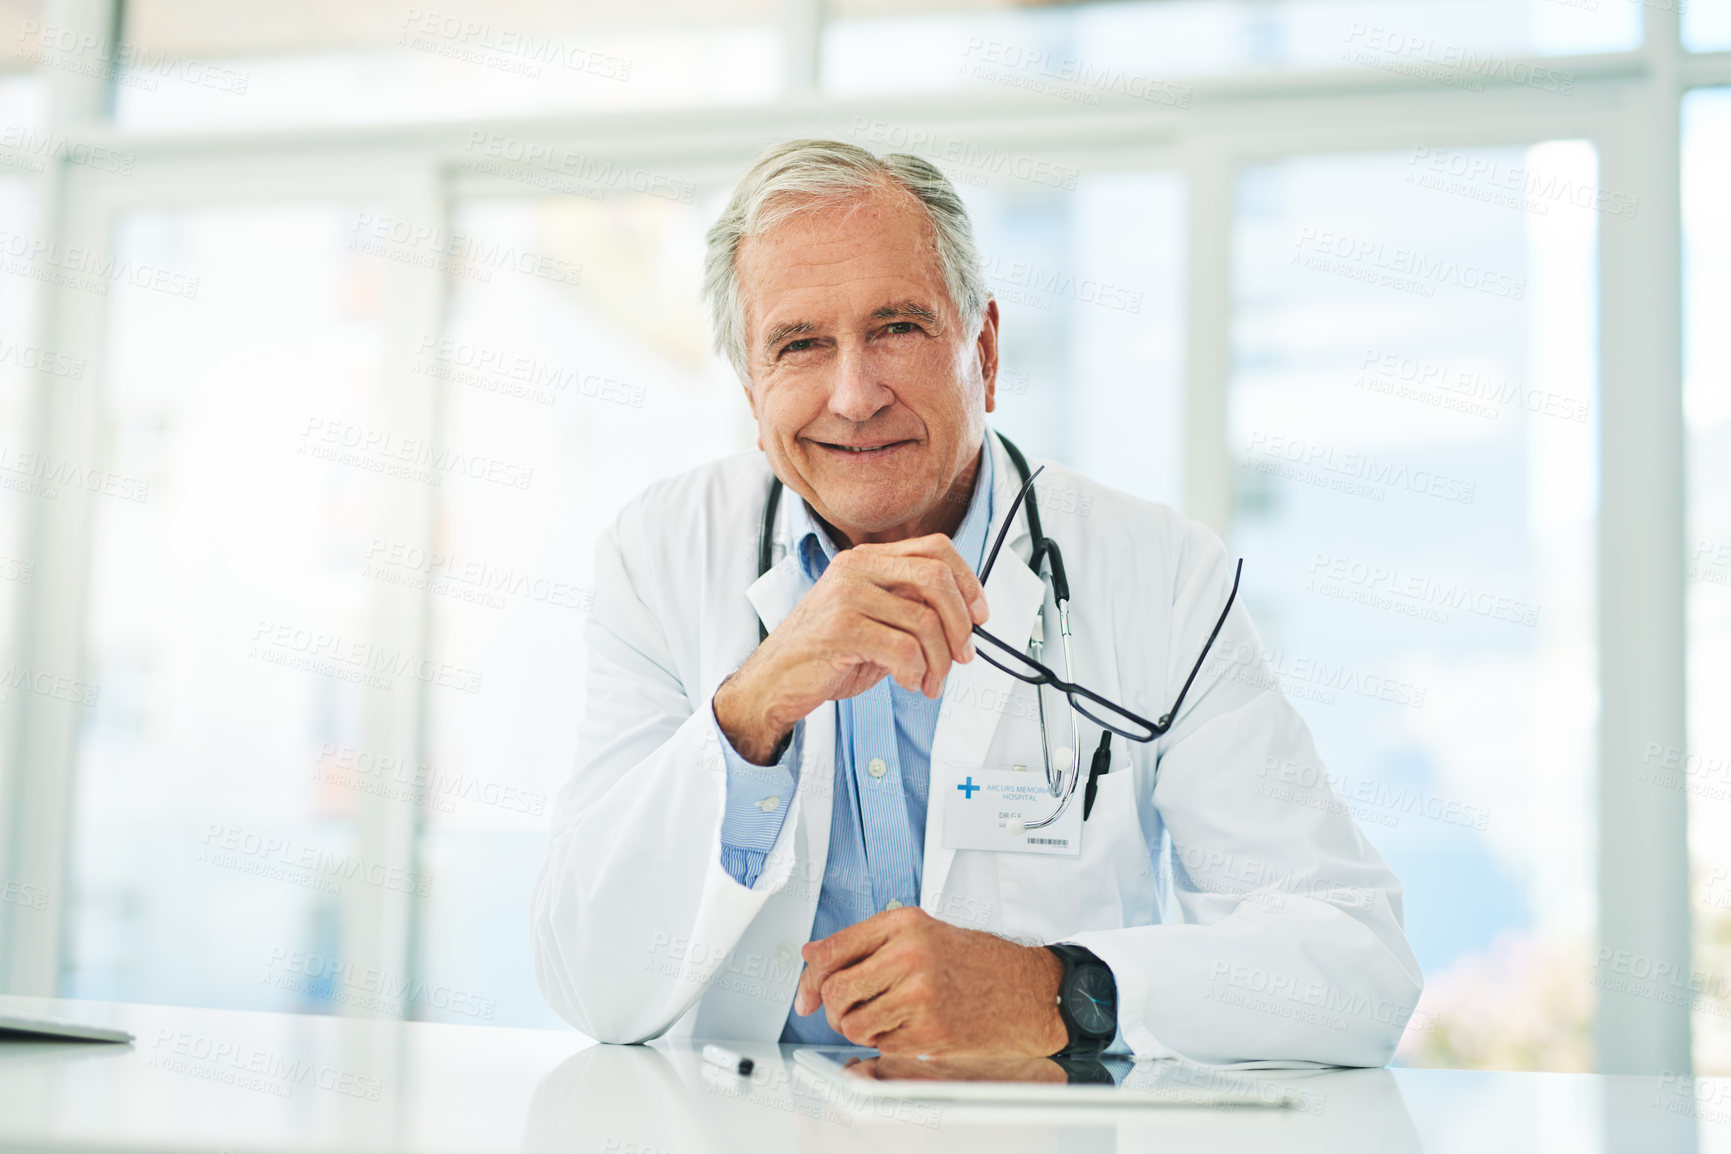 Buy stock photo Portrait of a cheerful elderly doctor seated at his desk while looking into the camera inside of his office during the day